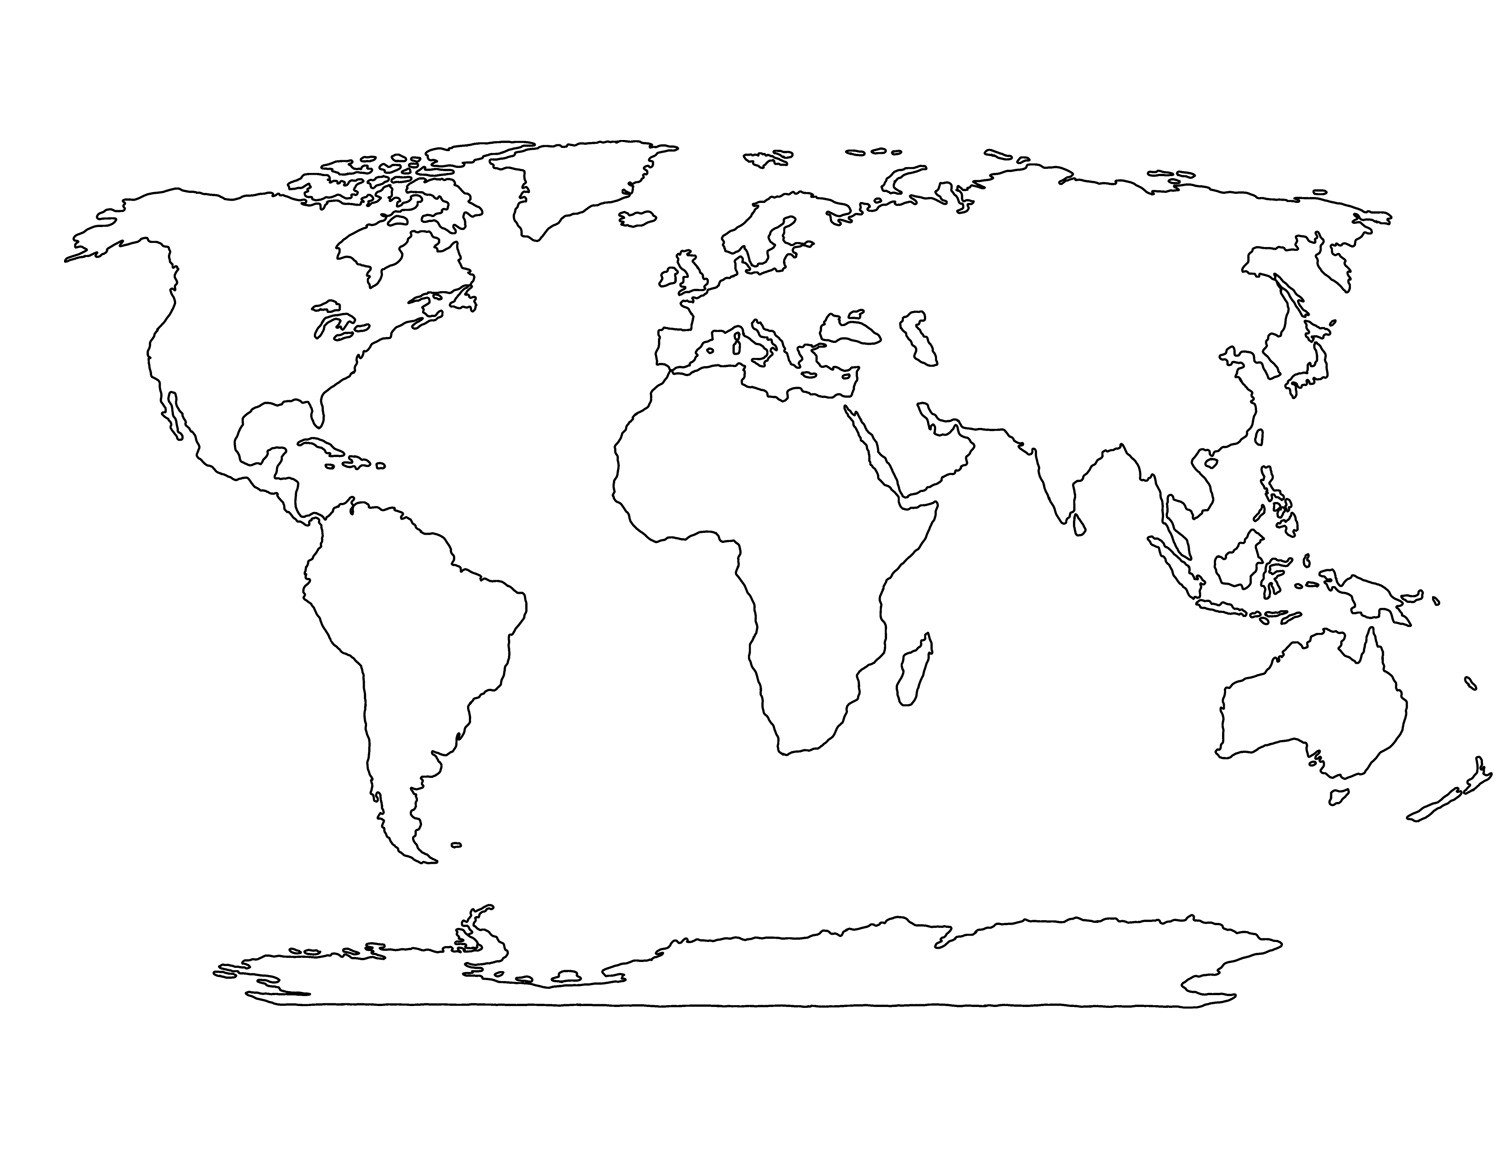 Map Worksheet for Kindergarten Printable Blank World Map Template for Students and Kids